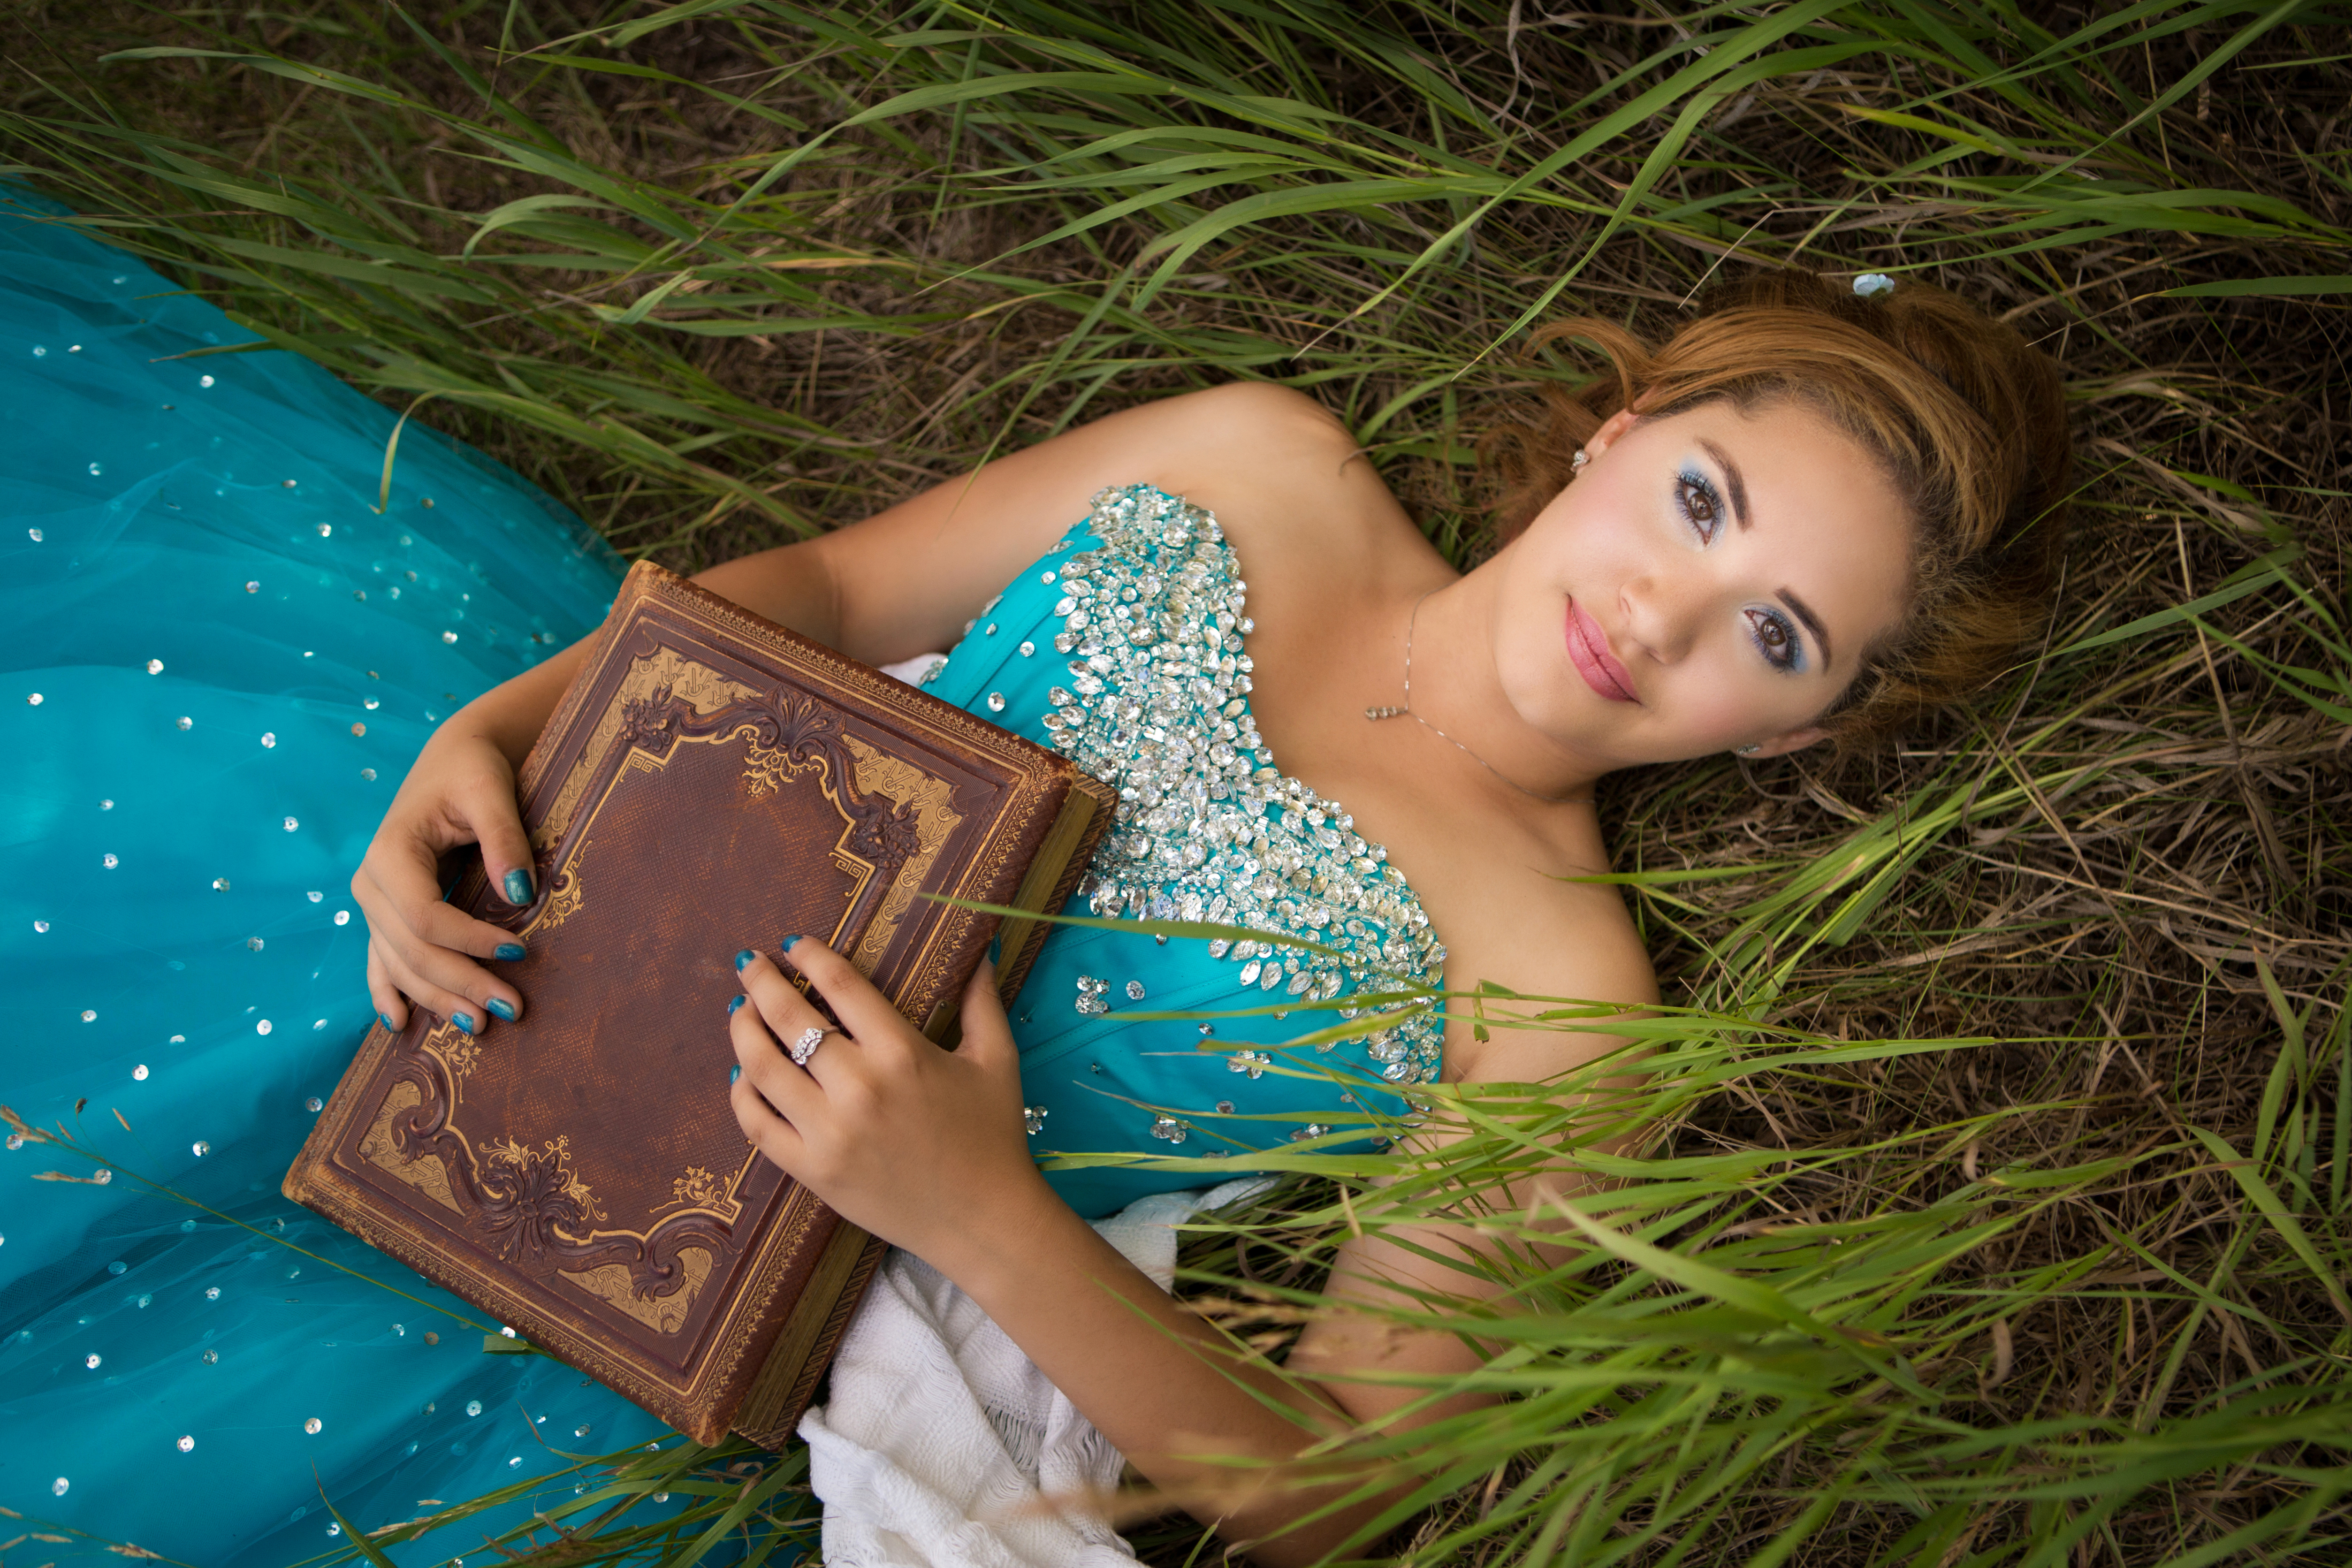 Teen girl in blue sparkly dress laying in grass holding an old book